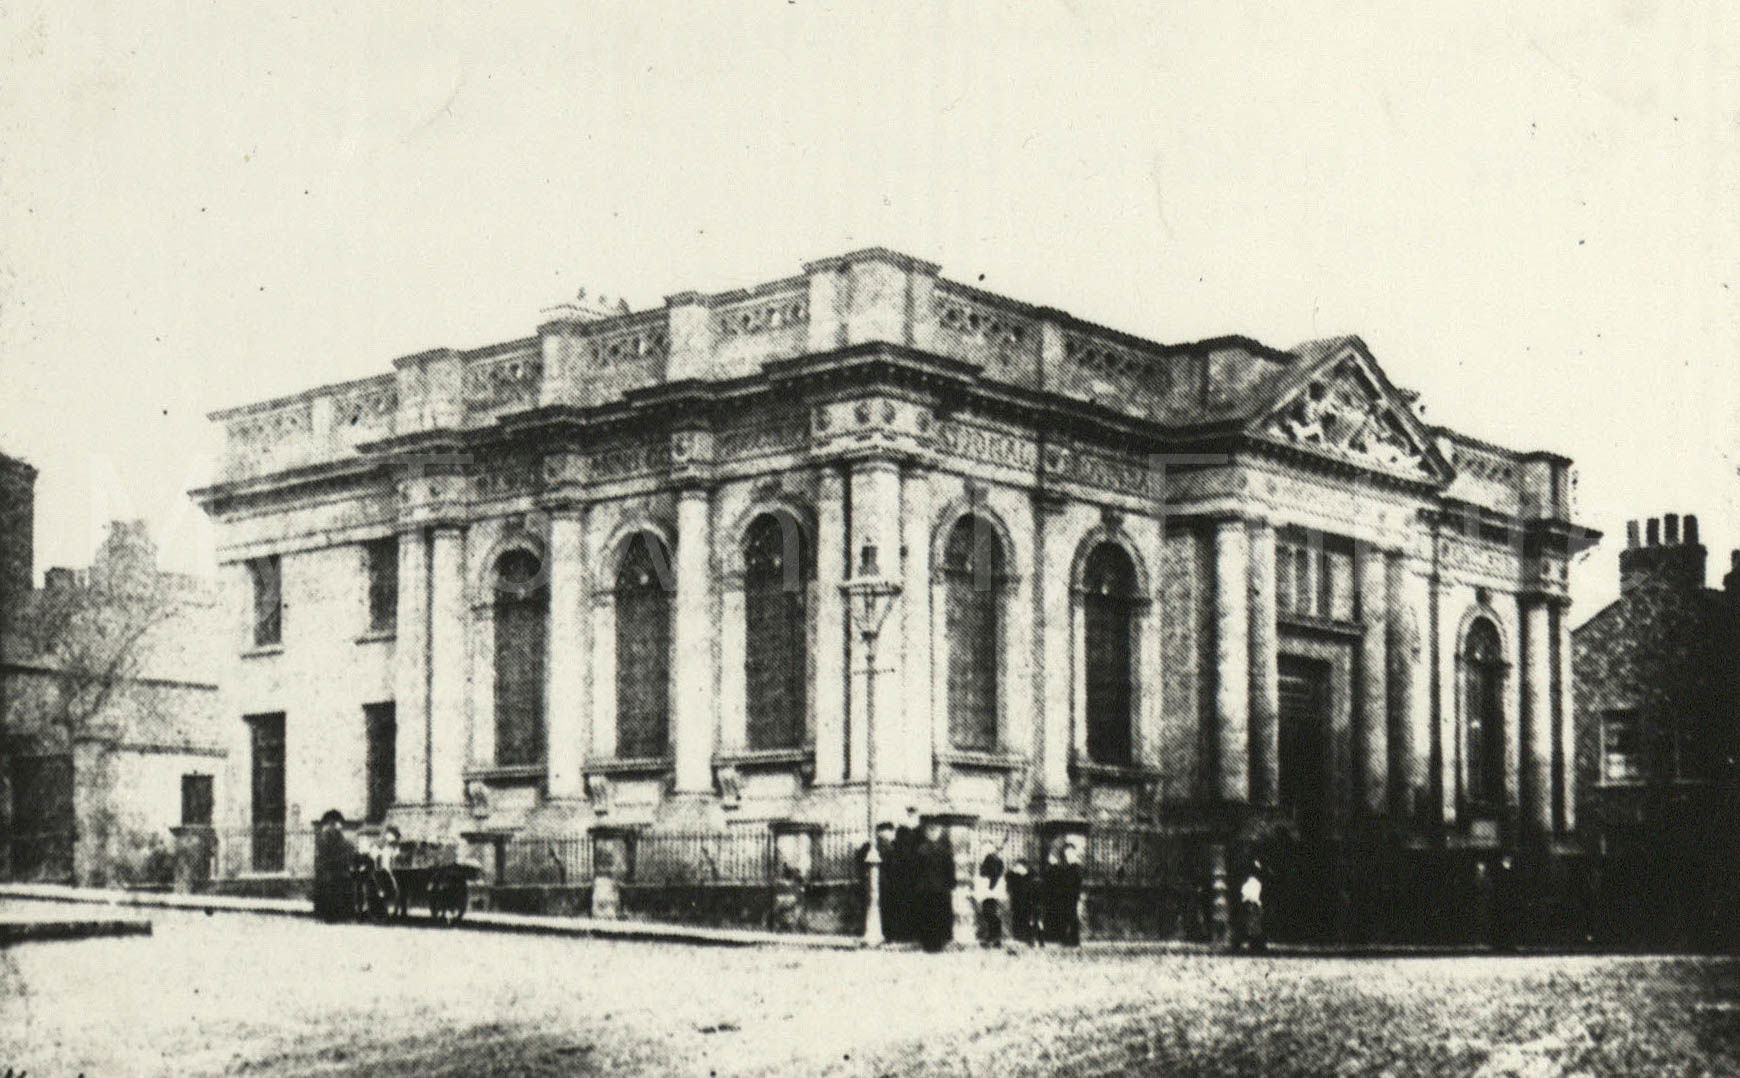 National Provincial Bank, Cleveland Street (Later Cleveland Club)